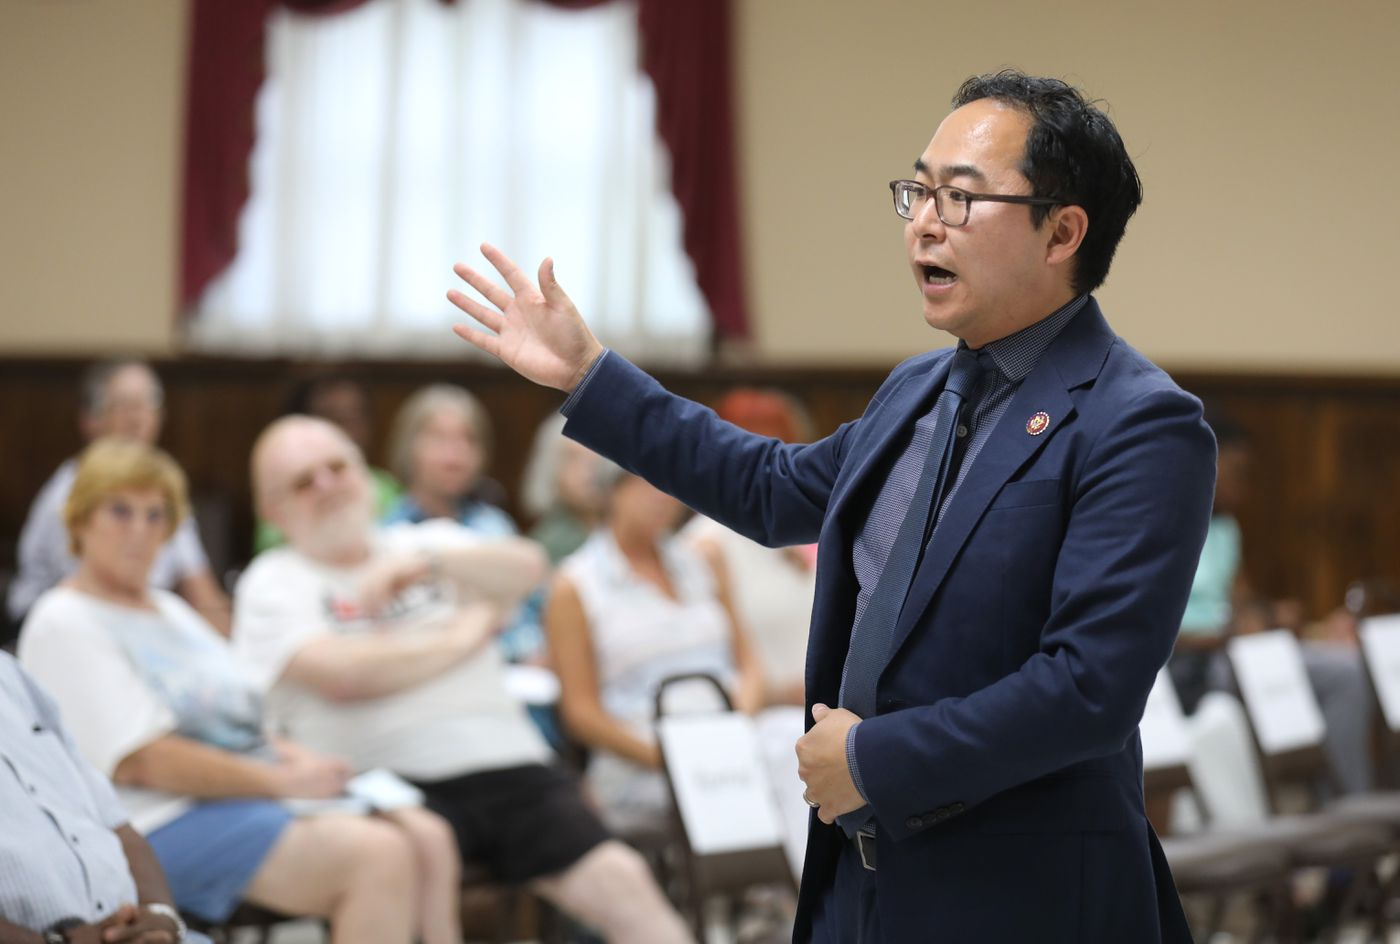 Congressman, Andy Kim is talking to the people in NJ constituents at Burlington Two Town HallÑ Andy Kim is speaking to the constituents 08-14-2019 AKIRA SUWA / For The Inquirer.